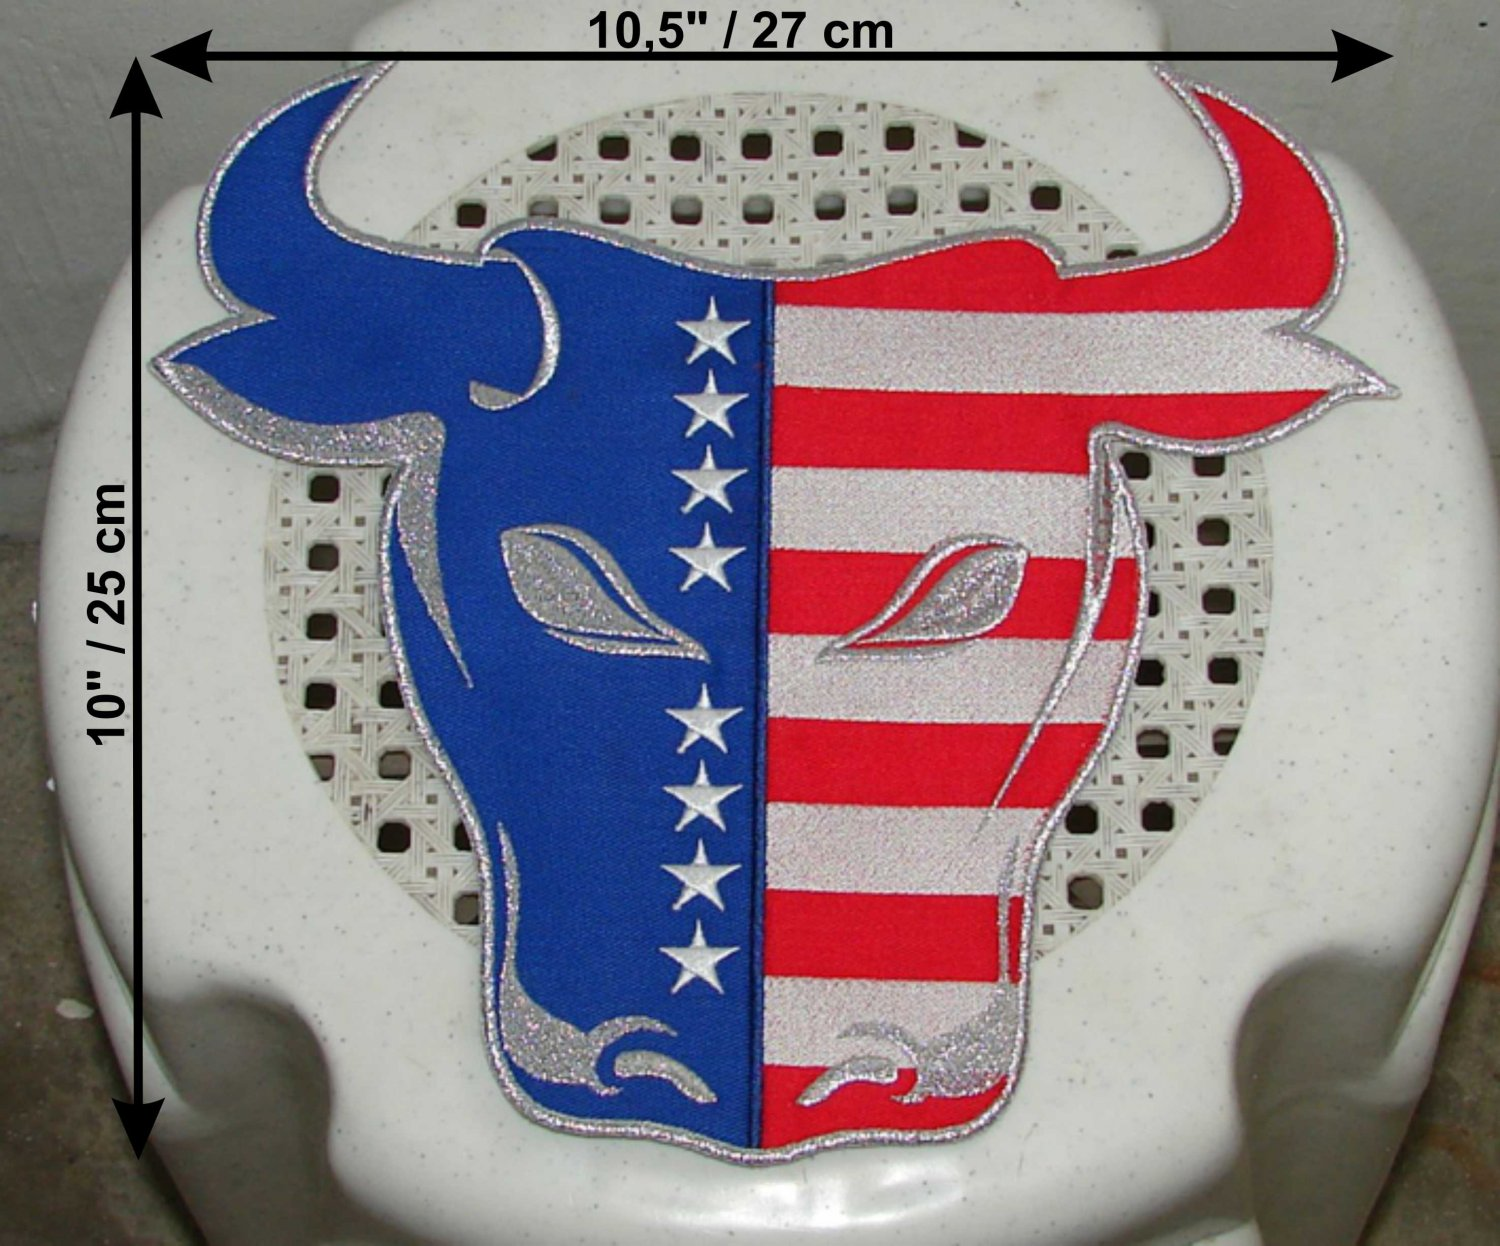 Captain america logo Bull head huge patch embroidery Marvel Comics Red Skull Avengers